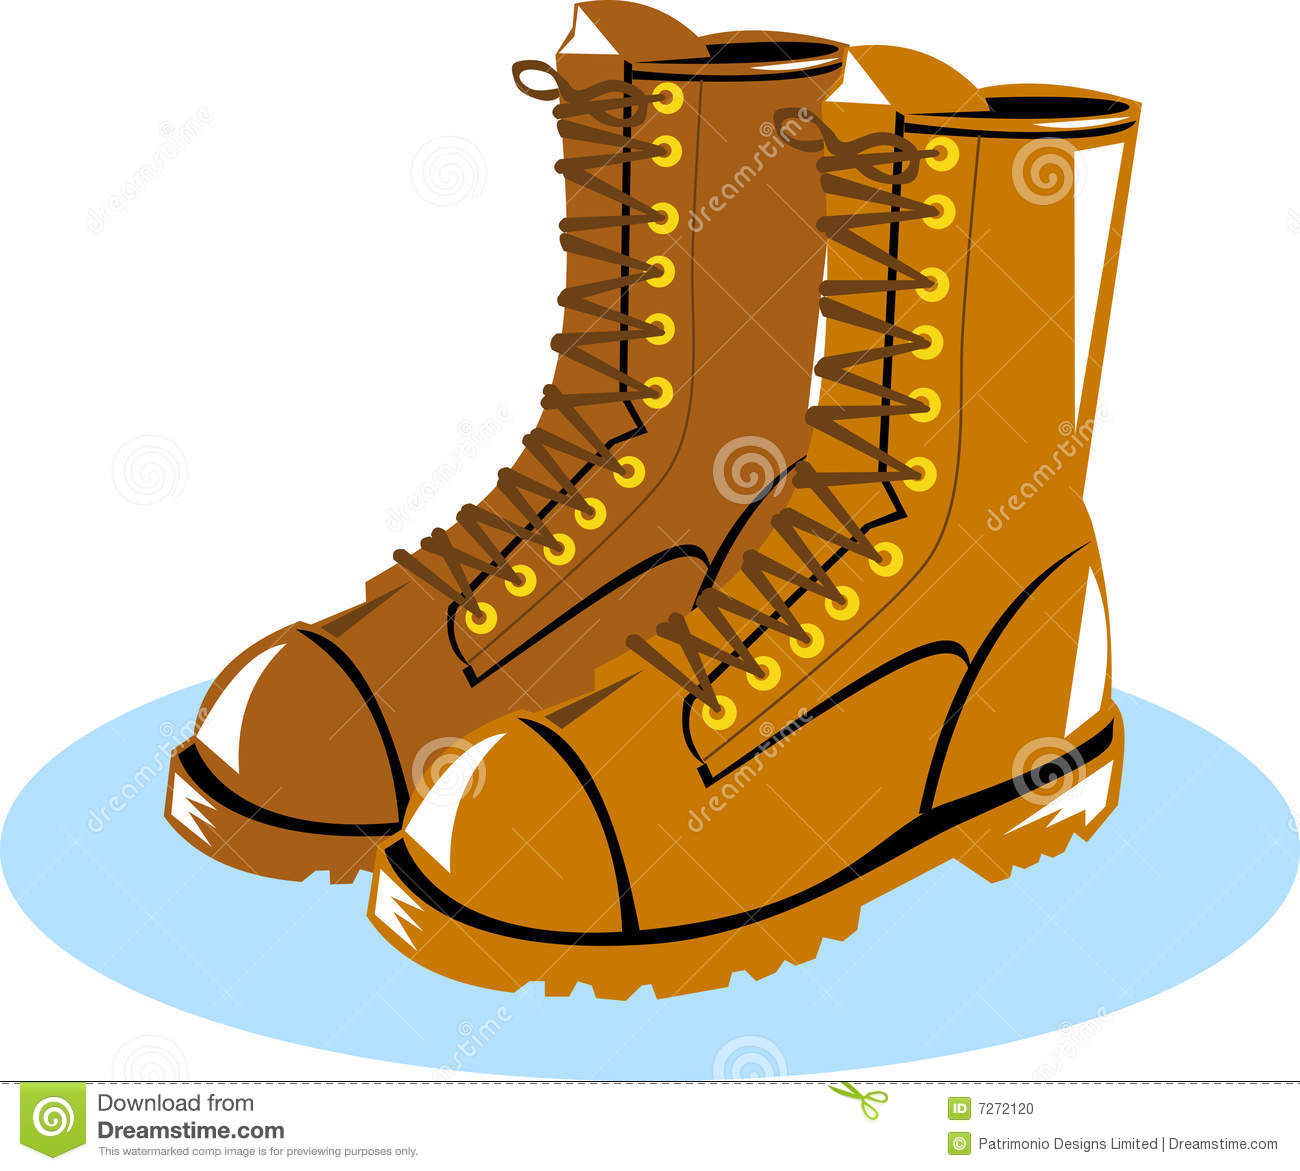 Safety Boots Clipart | www.pixshark.com - Images Galleries ...